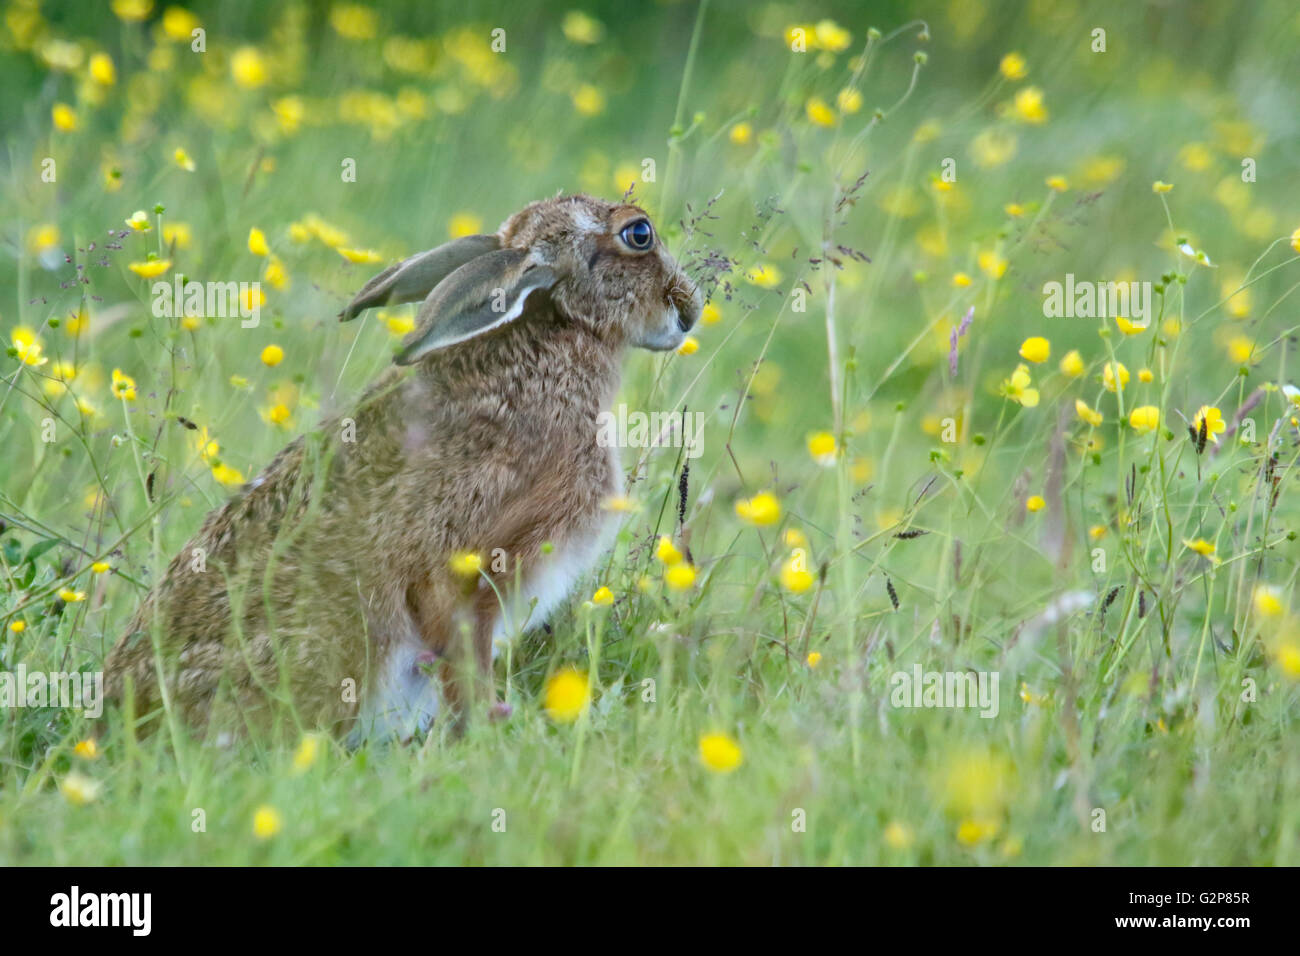 European Brown hare 'Lepus europaeus' grazing in a meadow, England, UK - Stock Image